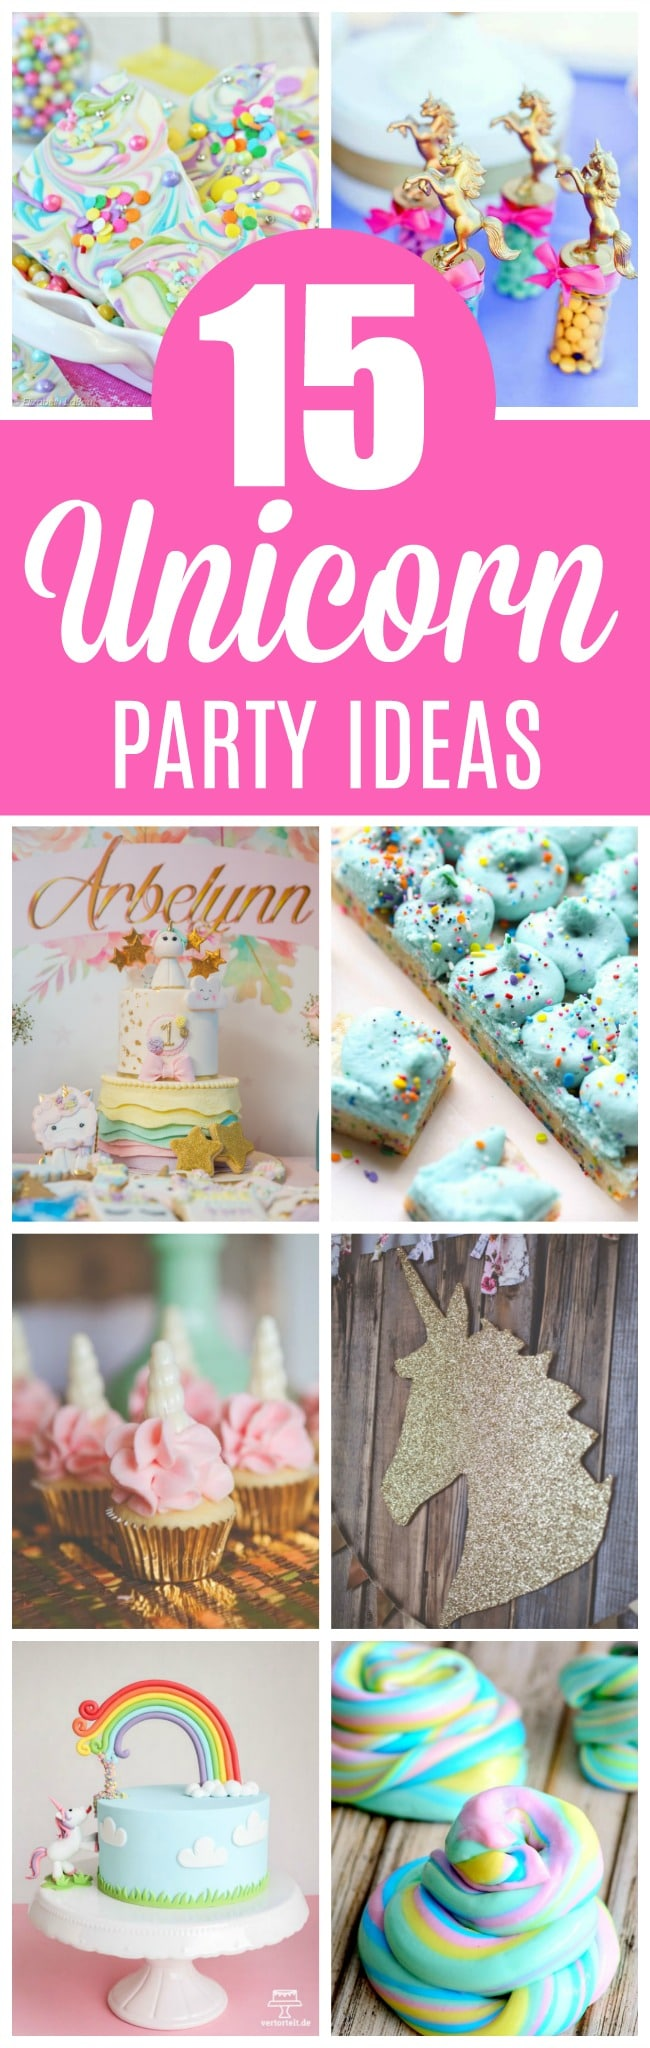 15 Magical Unicorn Party Ideas Everyone Will Love - Pretty My Party